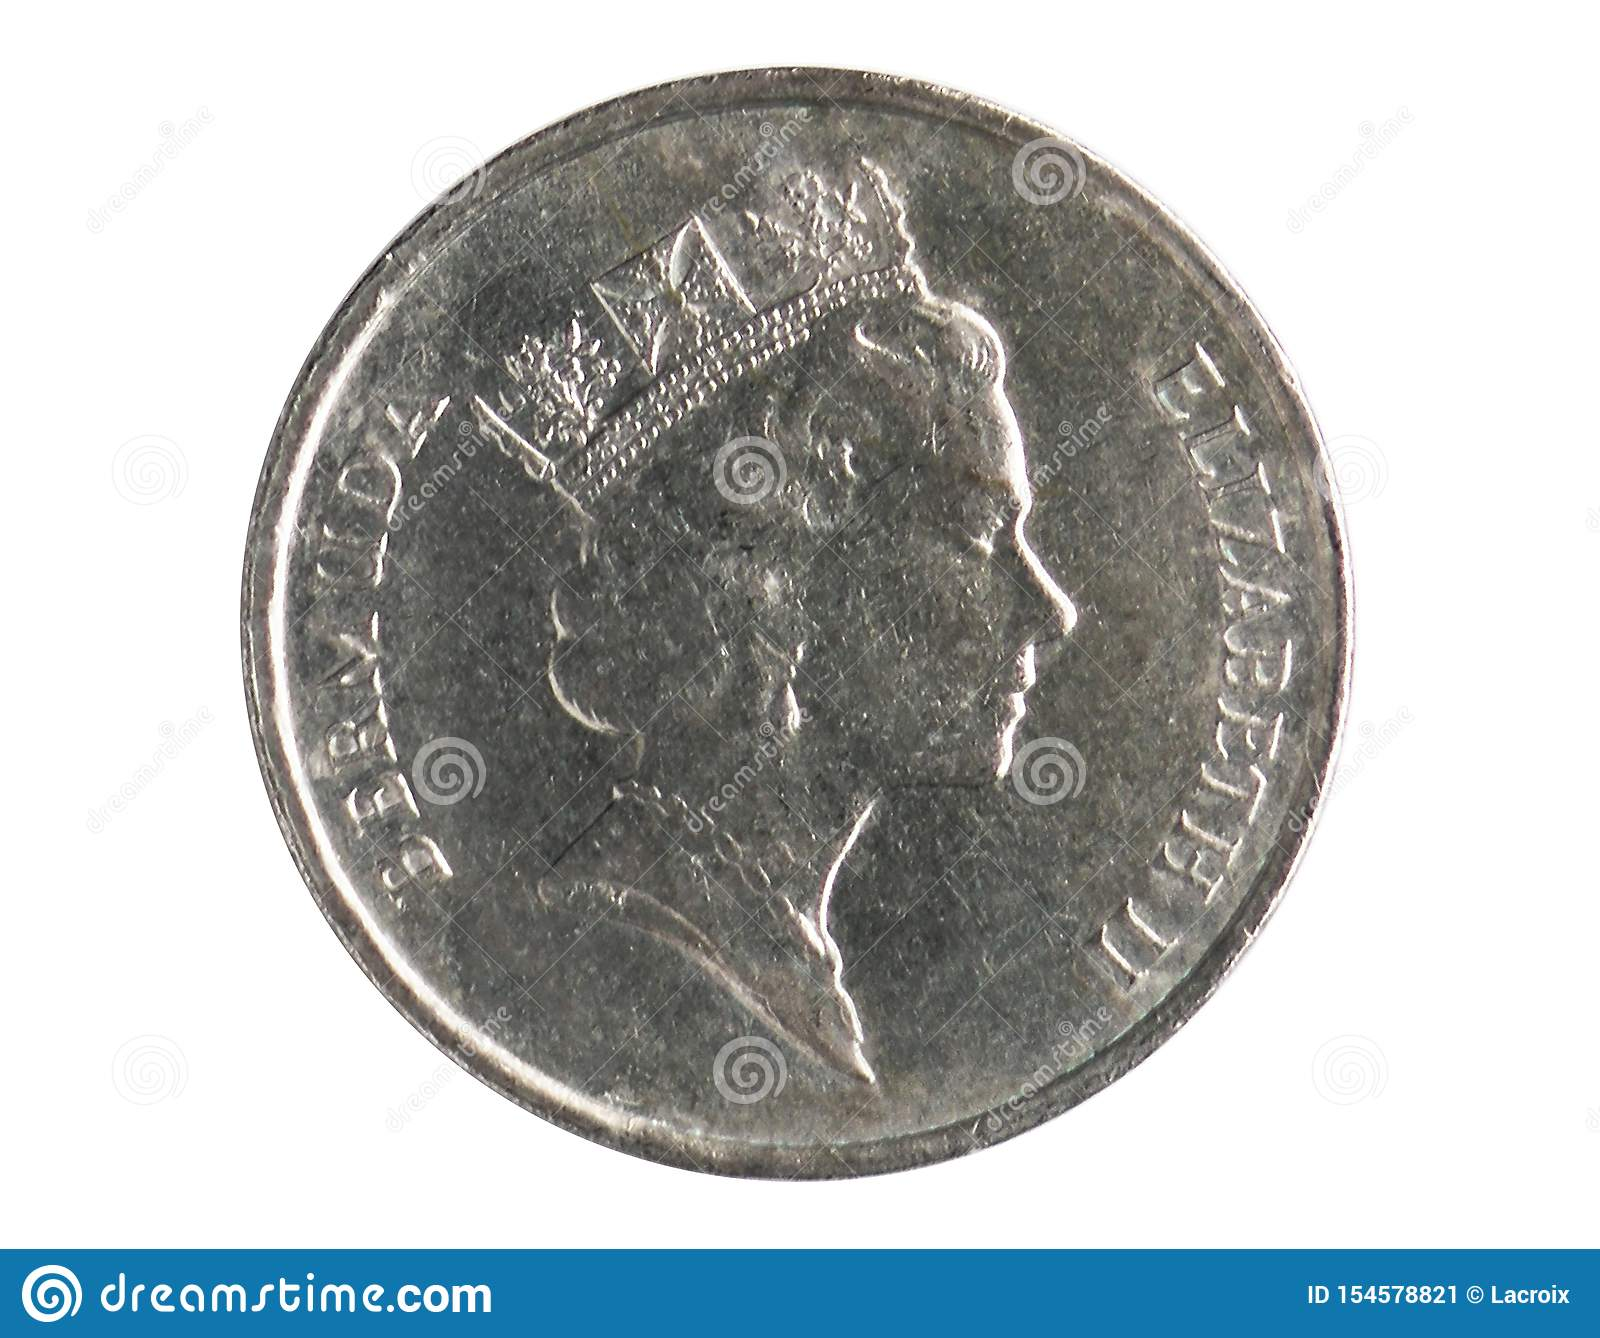 5 Cents coin, 1970~Today - Circulation - Dollar serie, Bank of Bermuda